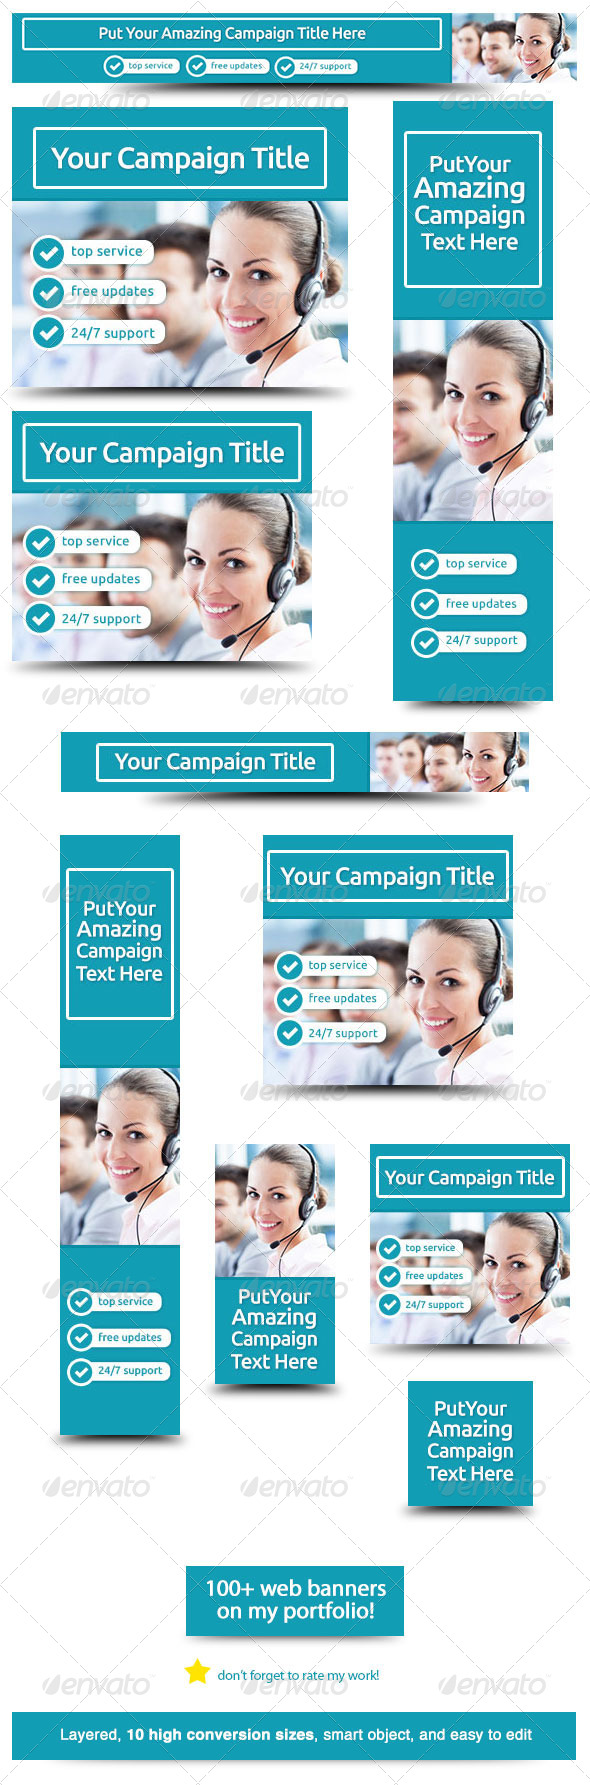 Corporate Web Banner Design Template 30 by admiral_adictus ...